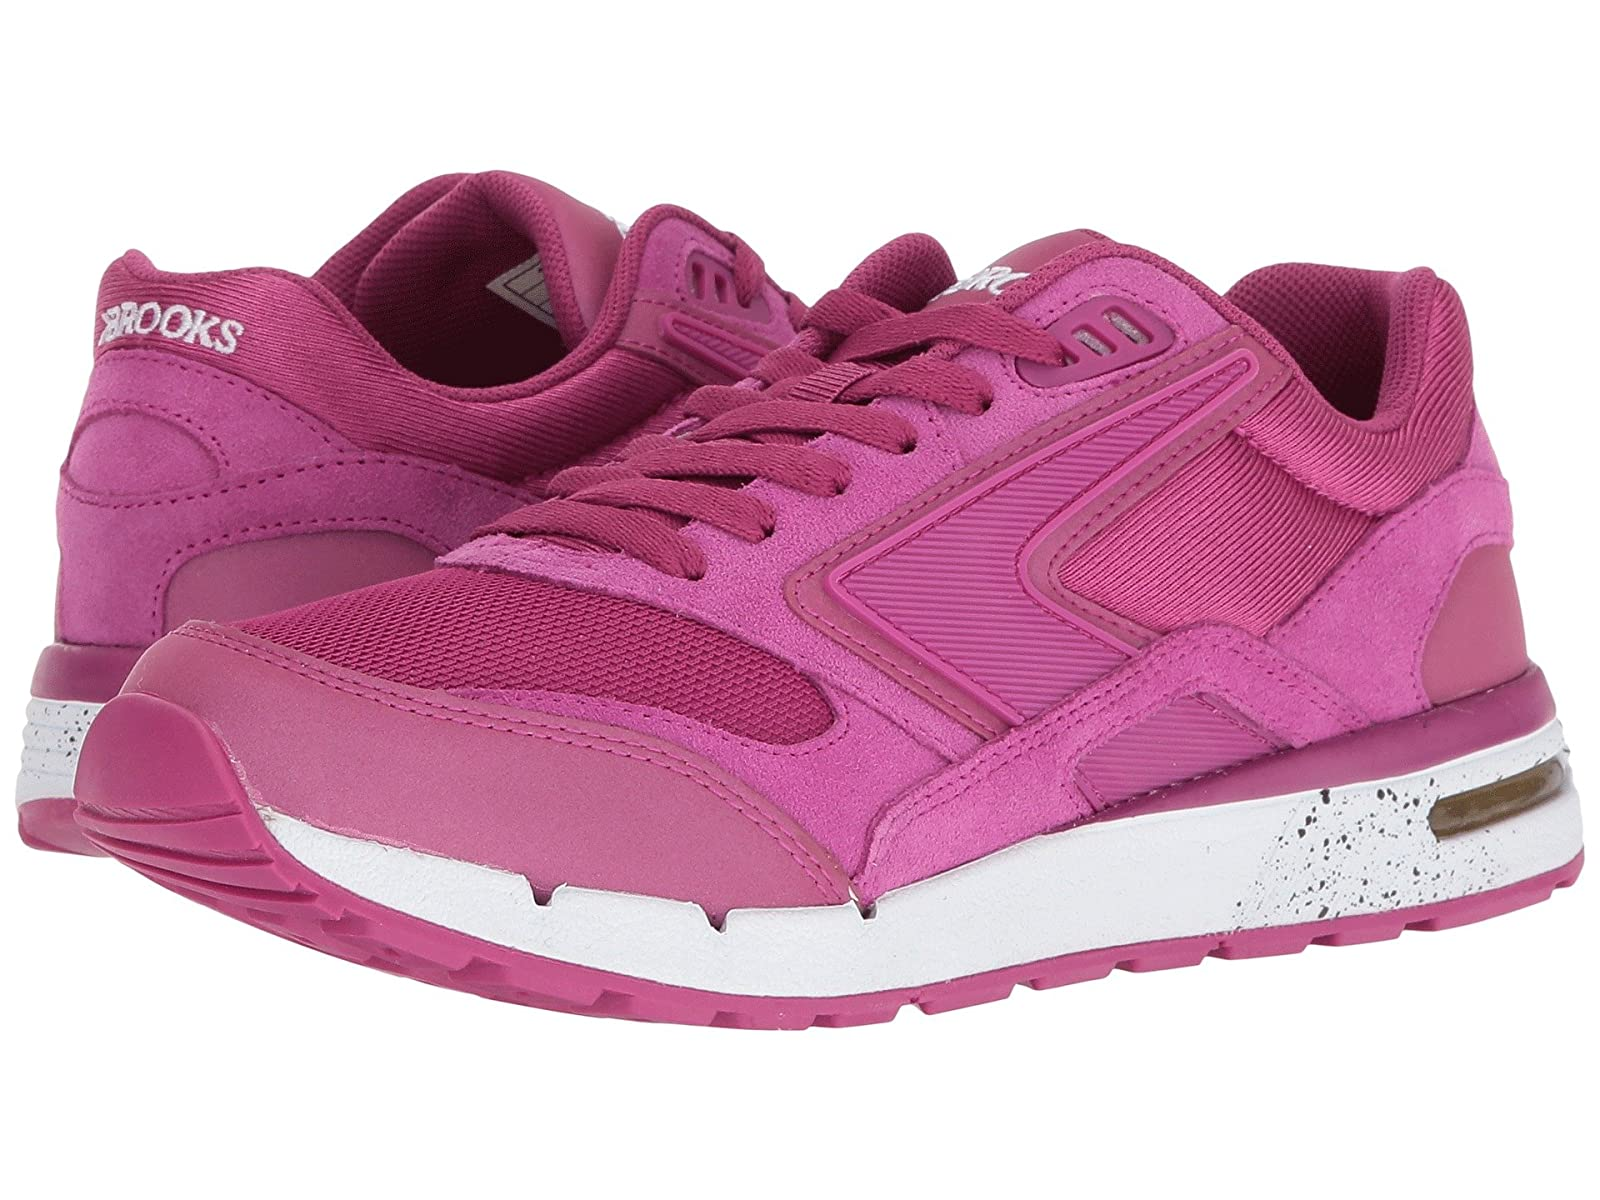 Brooks Heritage FusionCheap and distinctive eye-catching shoes